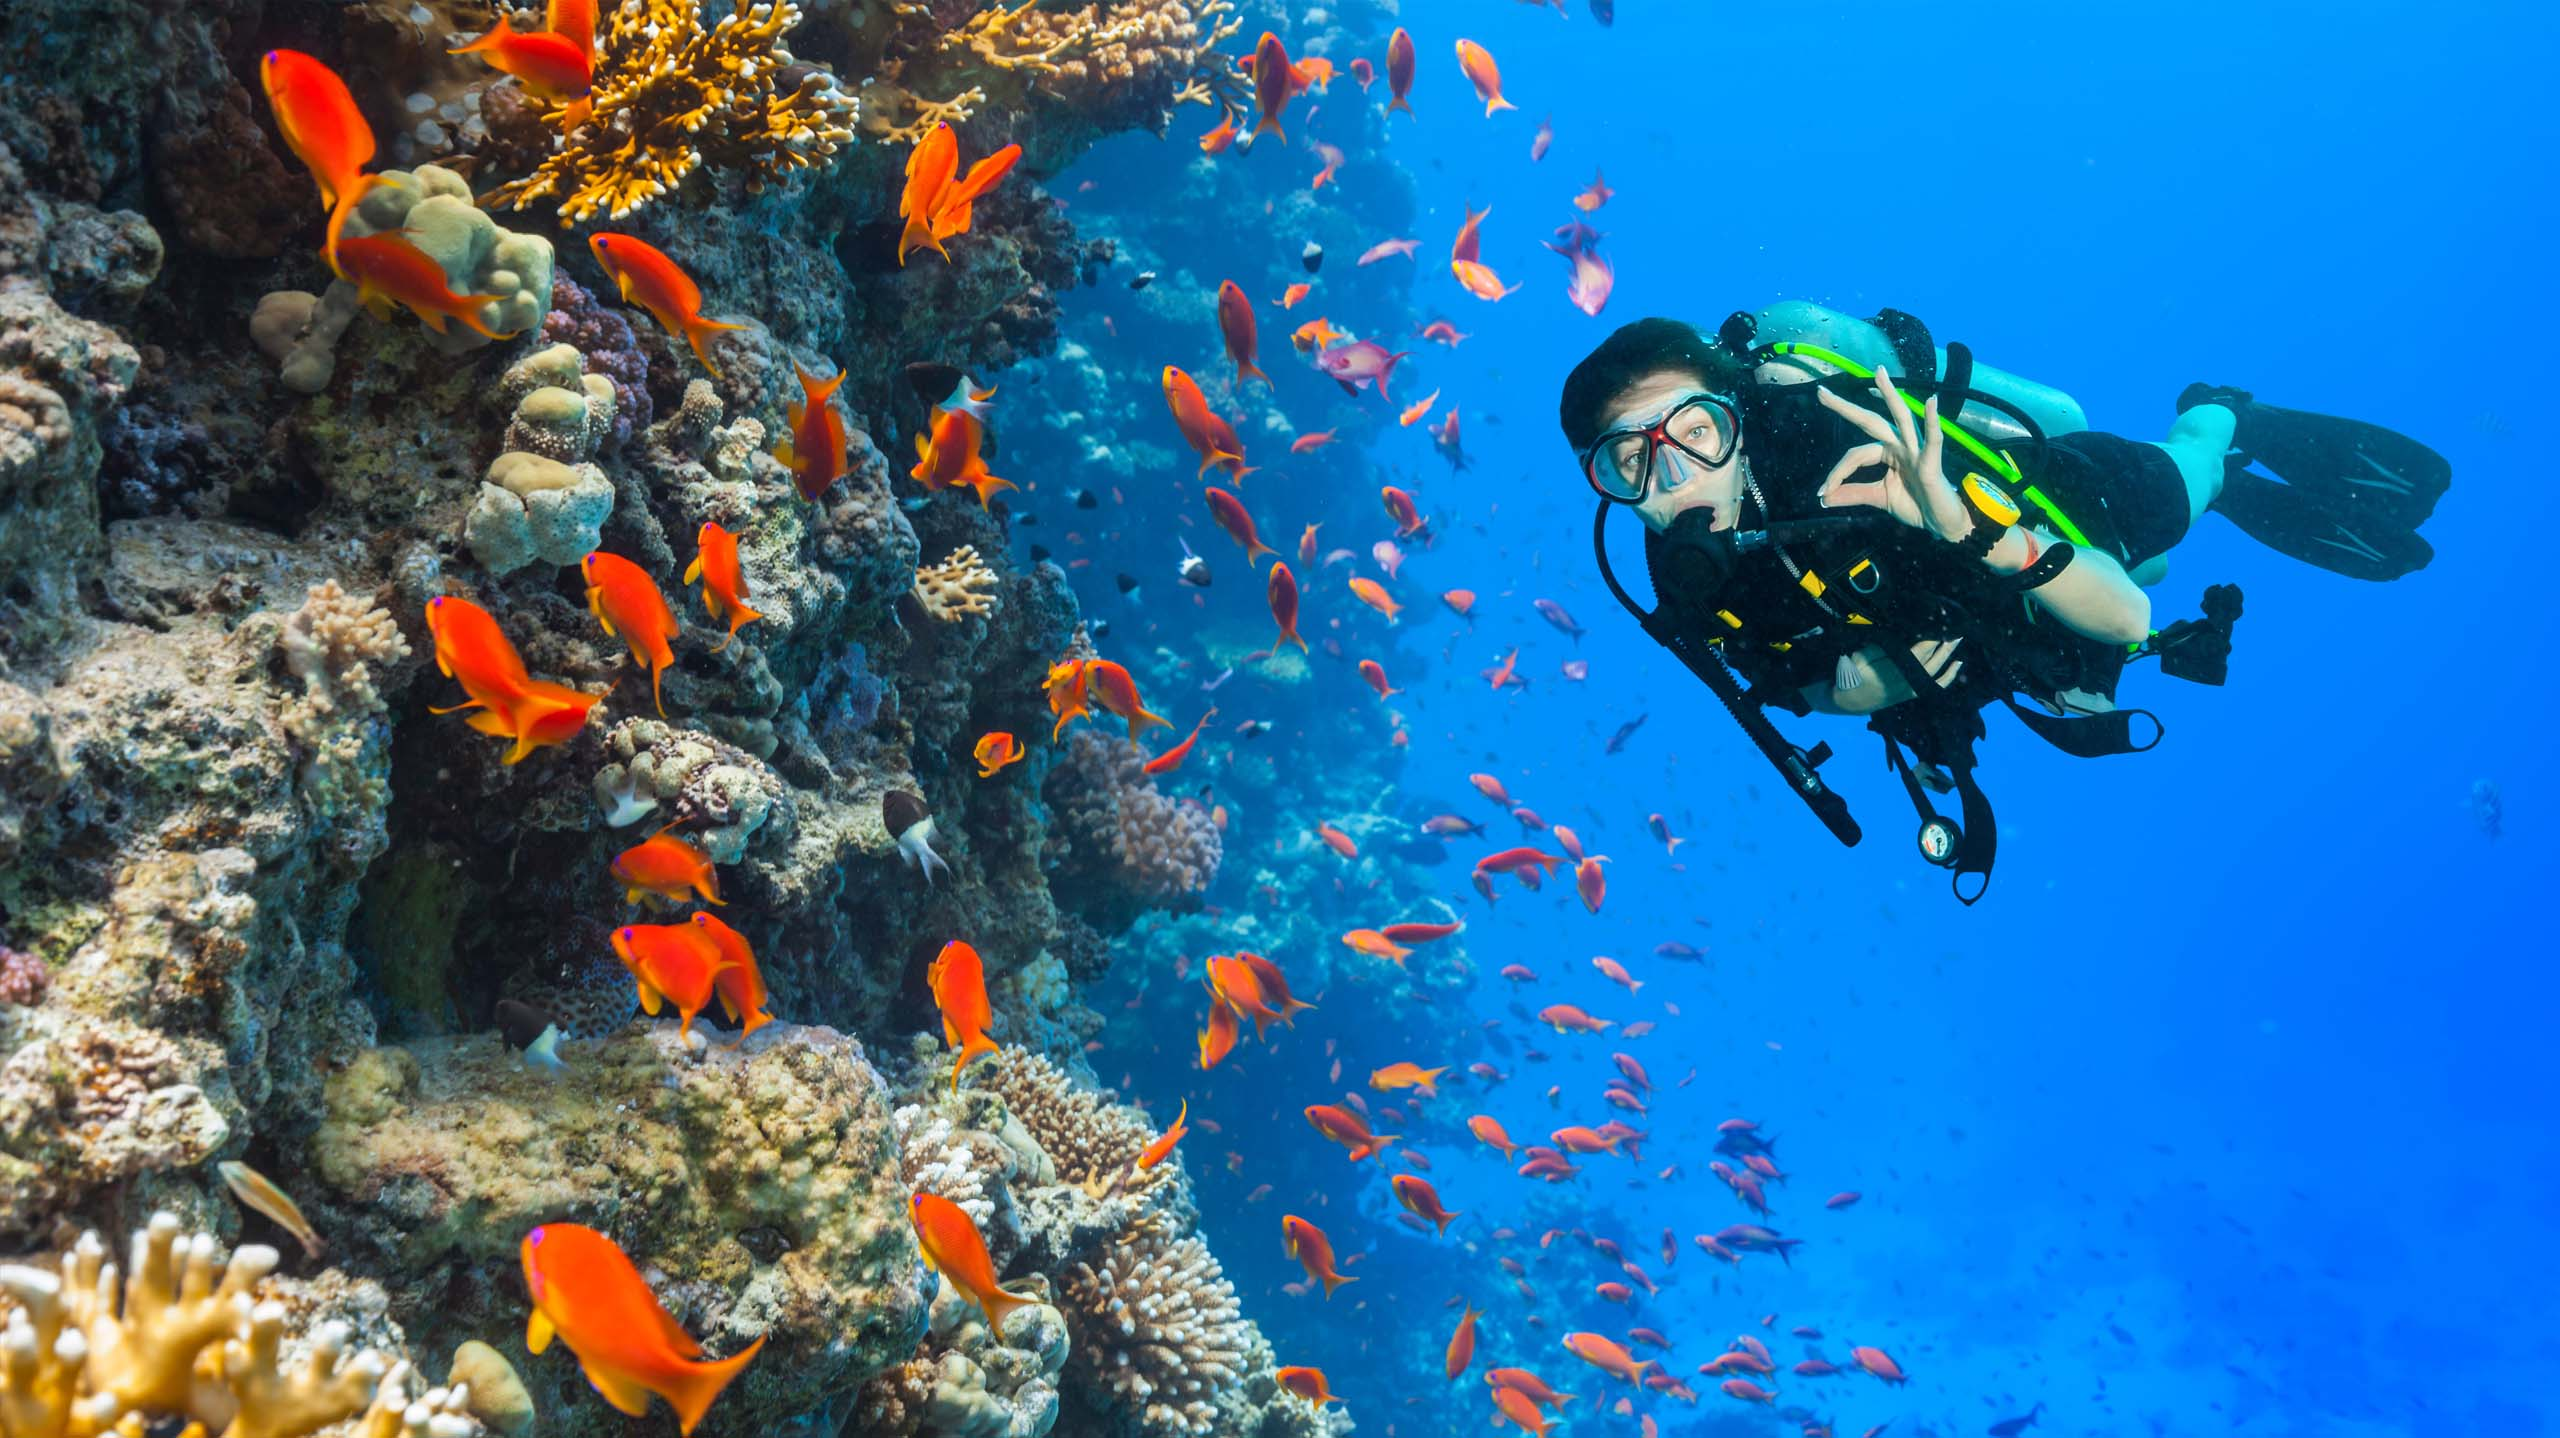 Scuba diver swims with shoal of orange fish above a reef